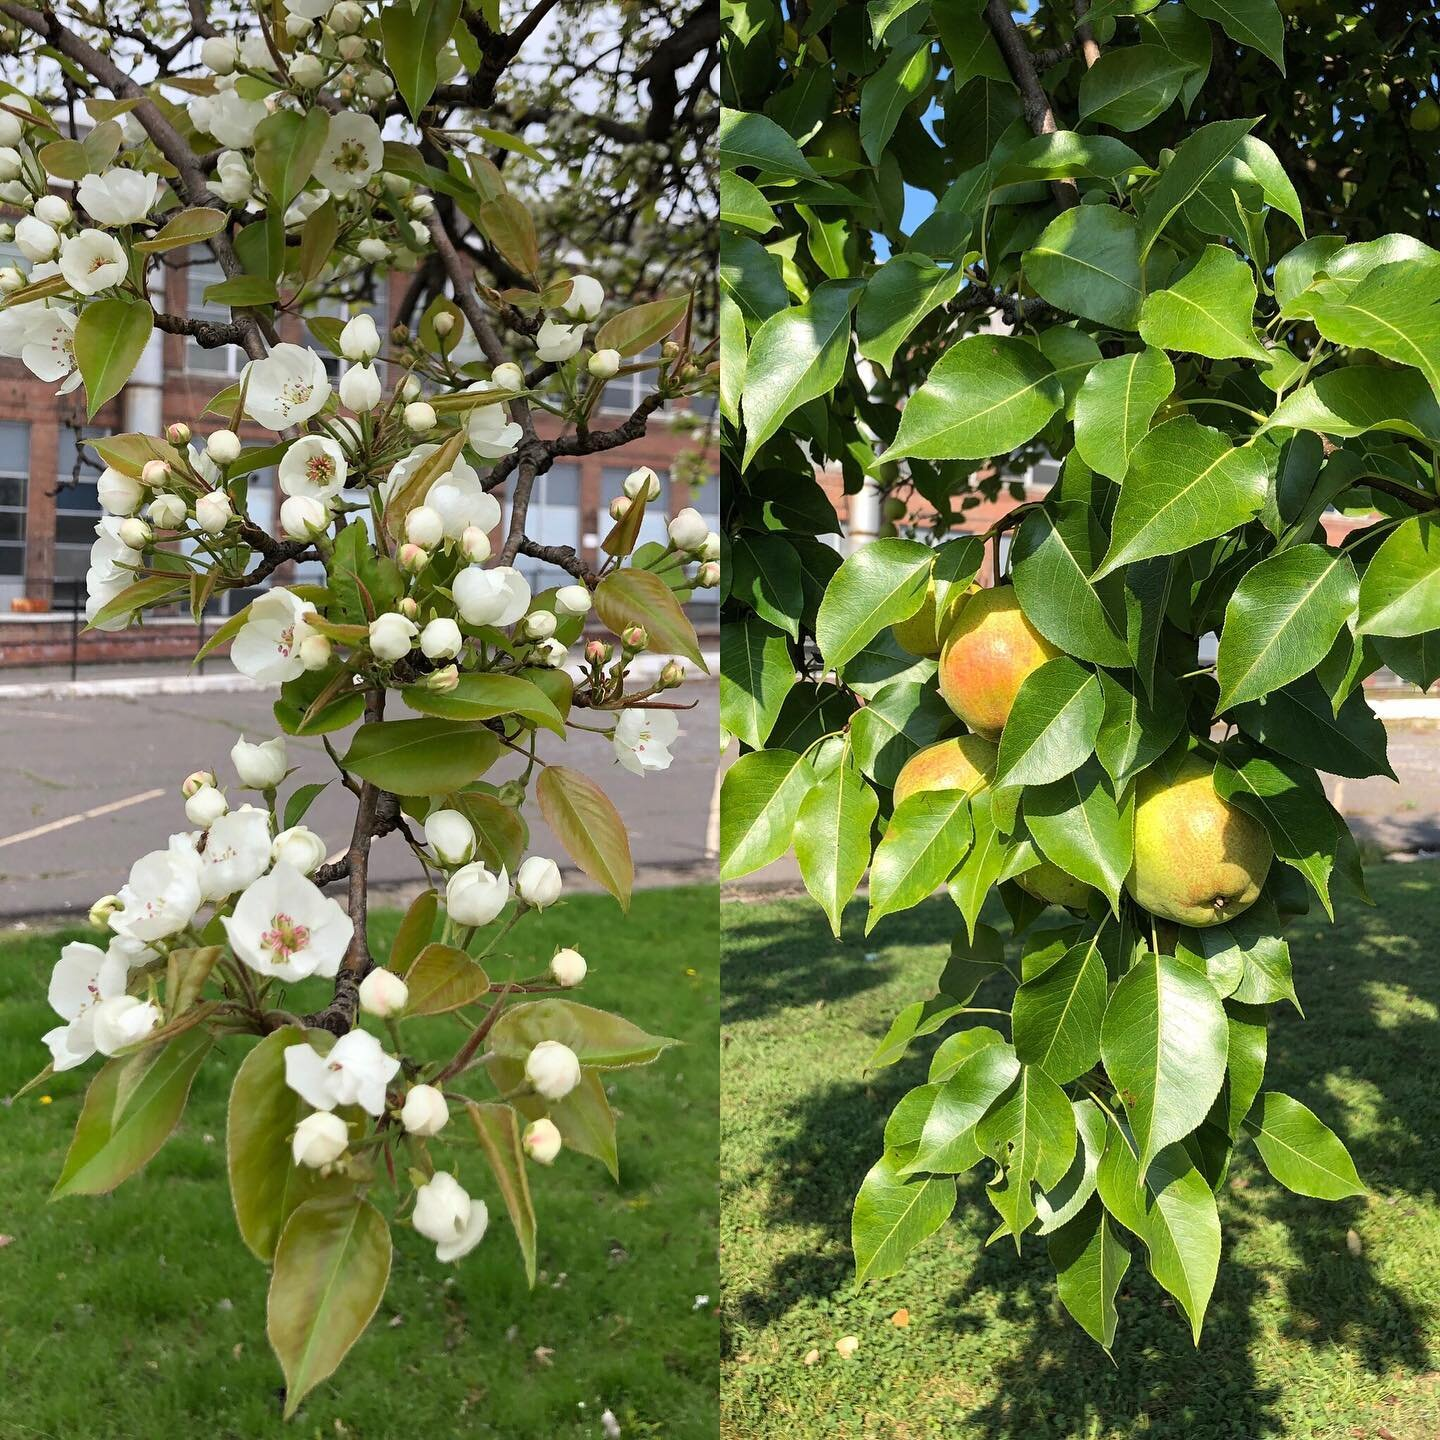 The pear tree at Electric Works has been blooming every year, with or without anyone around to harvest its fruit.